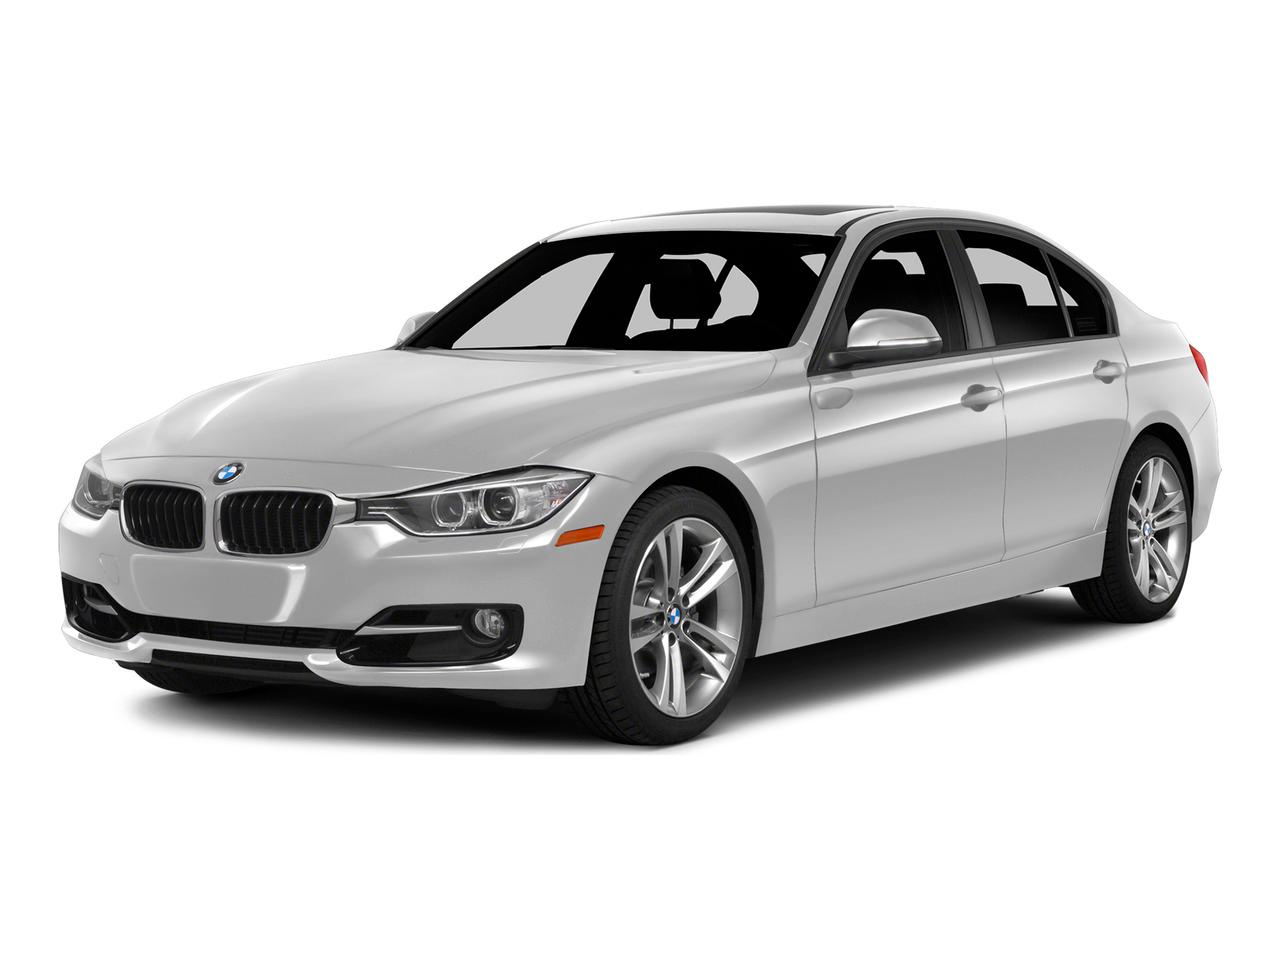 2015 BMW 328i xDrive Vehicle Photo in Anchorage, AK 99515